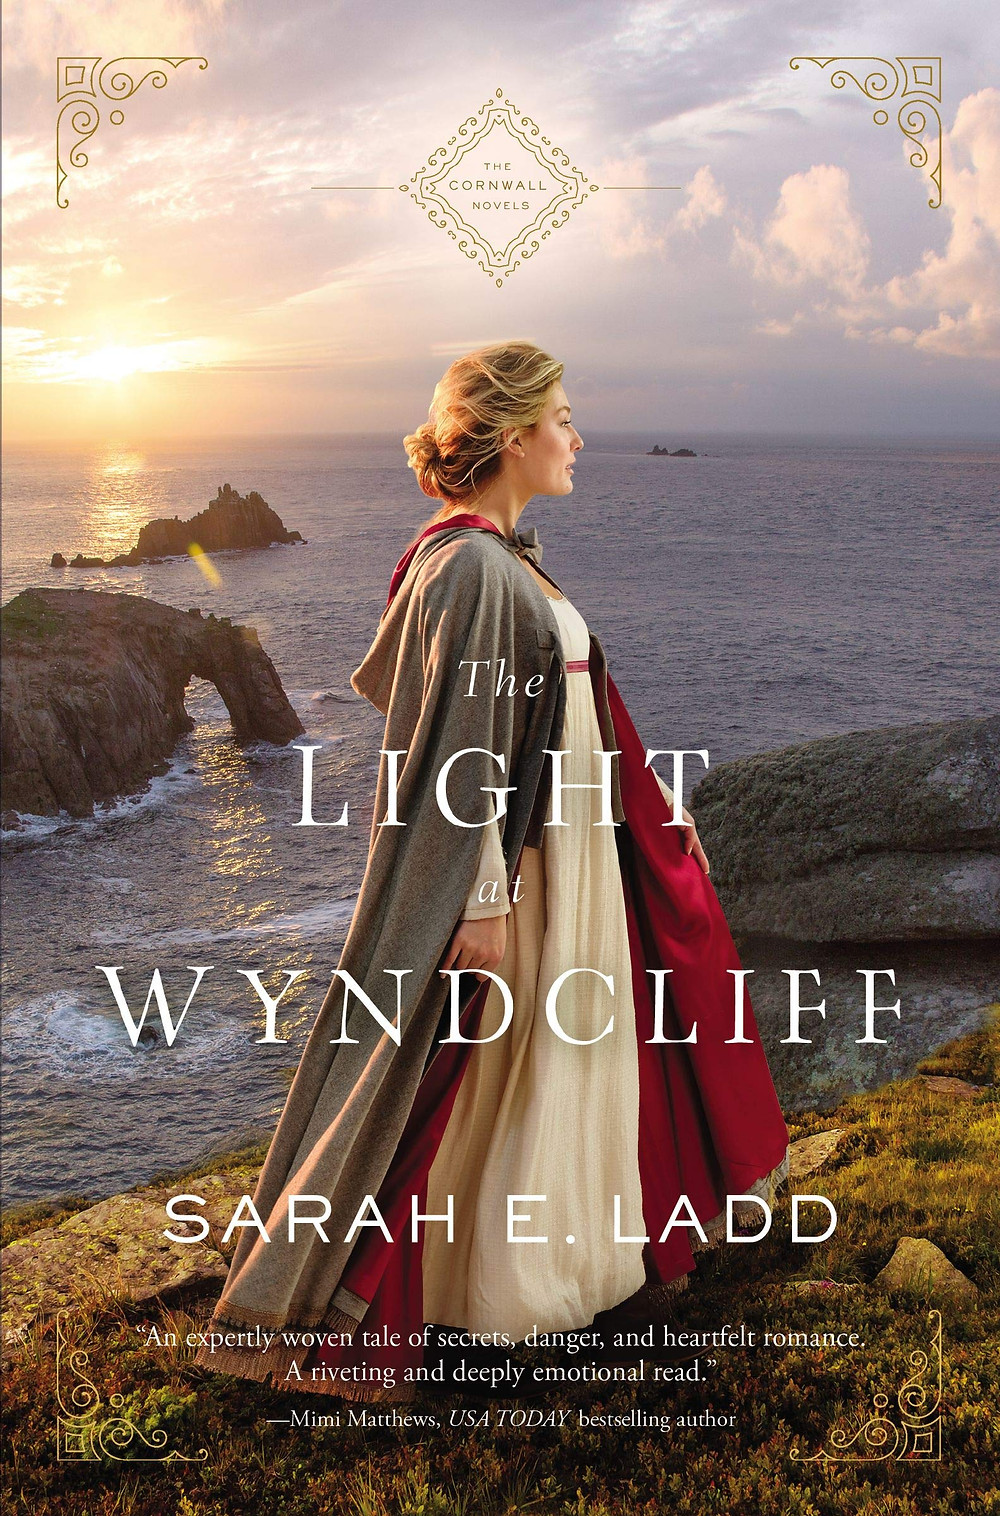 The Light at Wyndcliff by Sarah E. Ladd - Book Recommendation